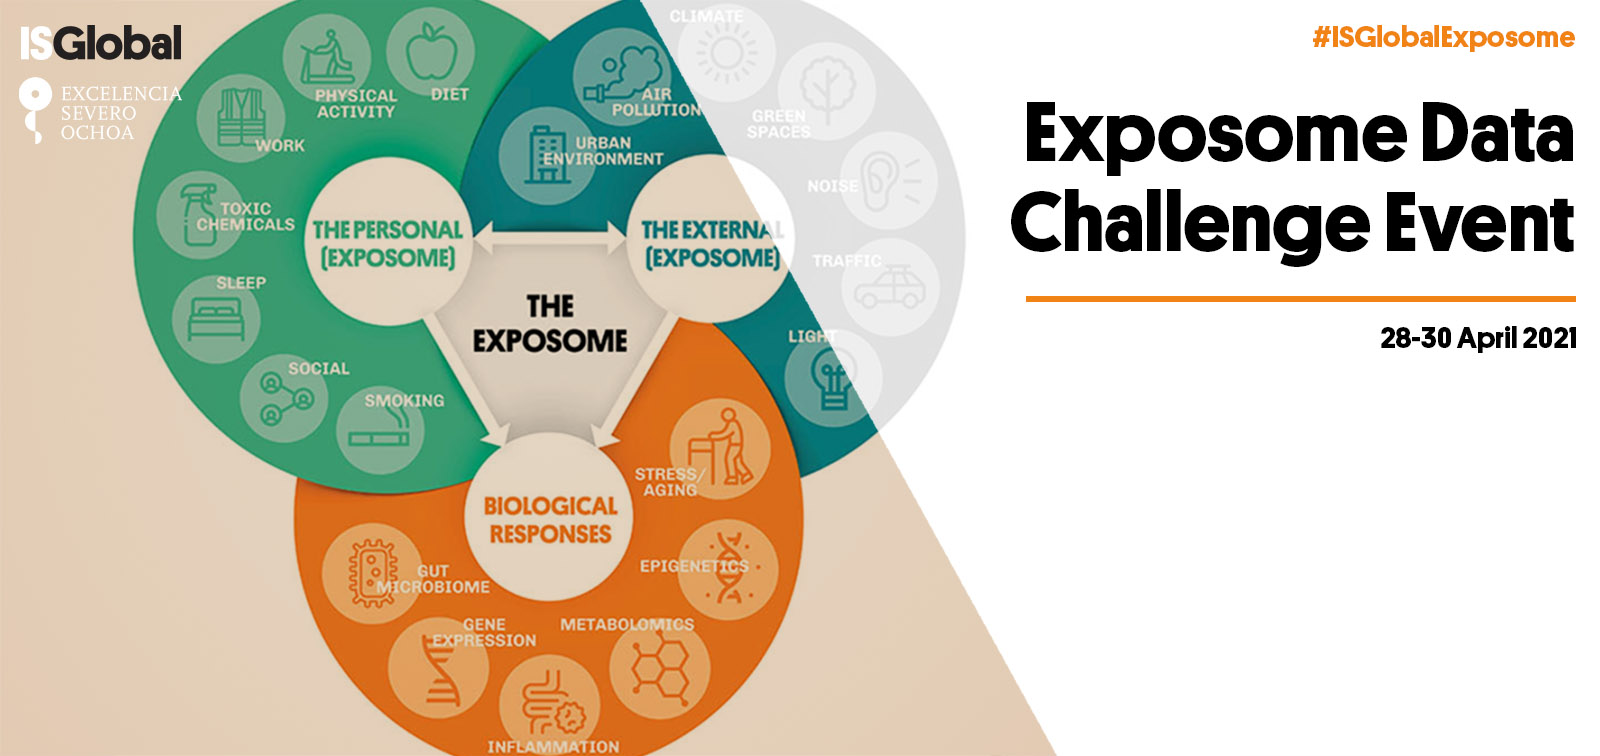 Exposome Data Analysis Challenge